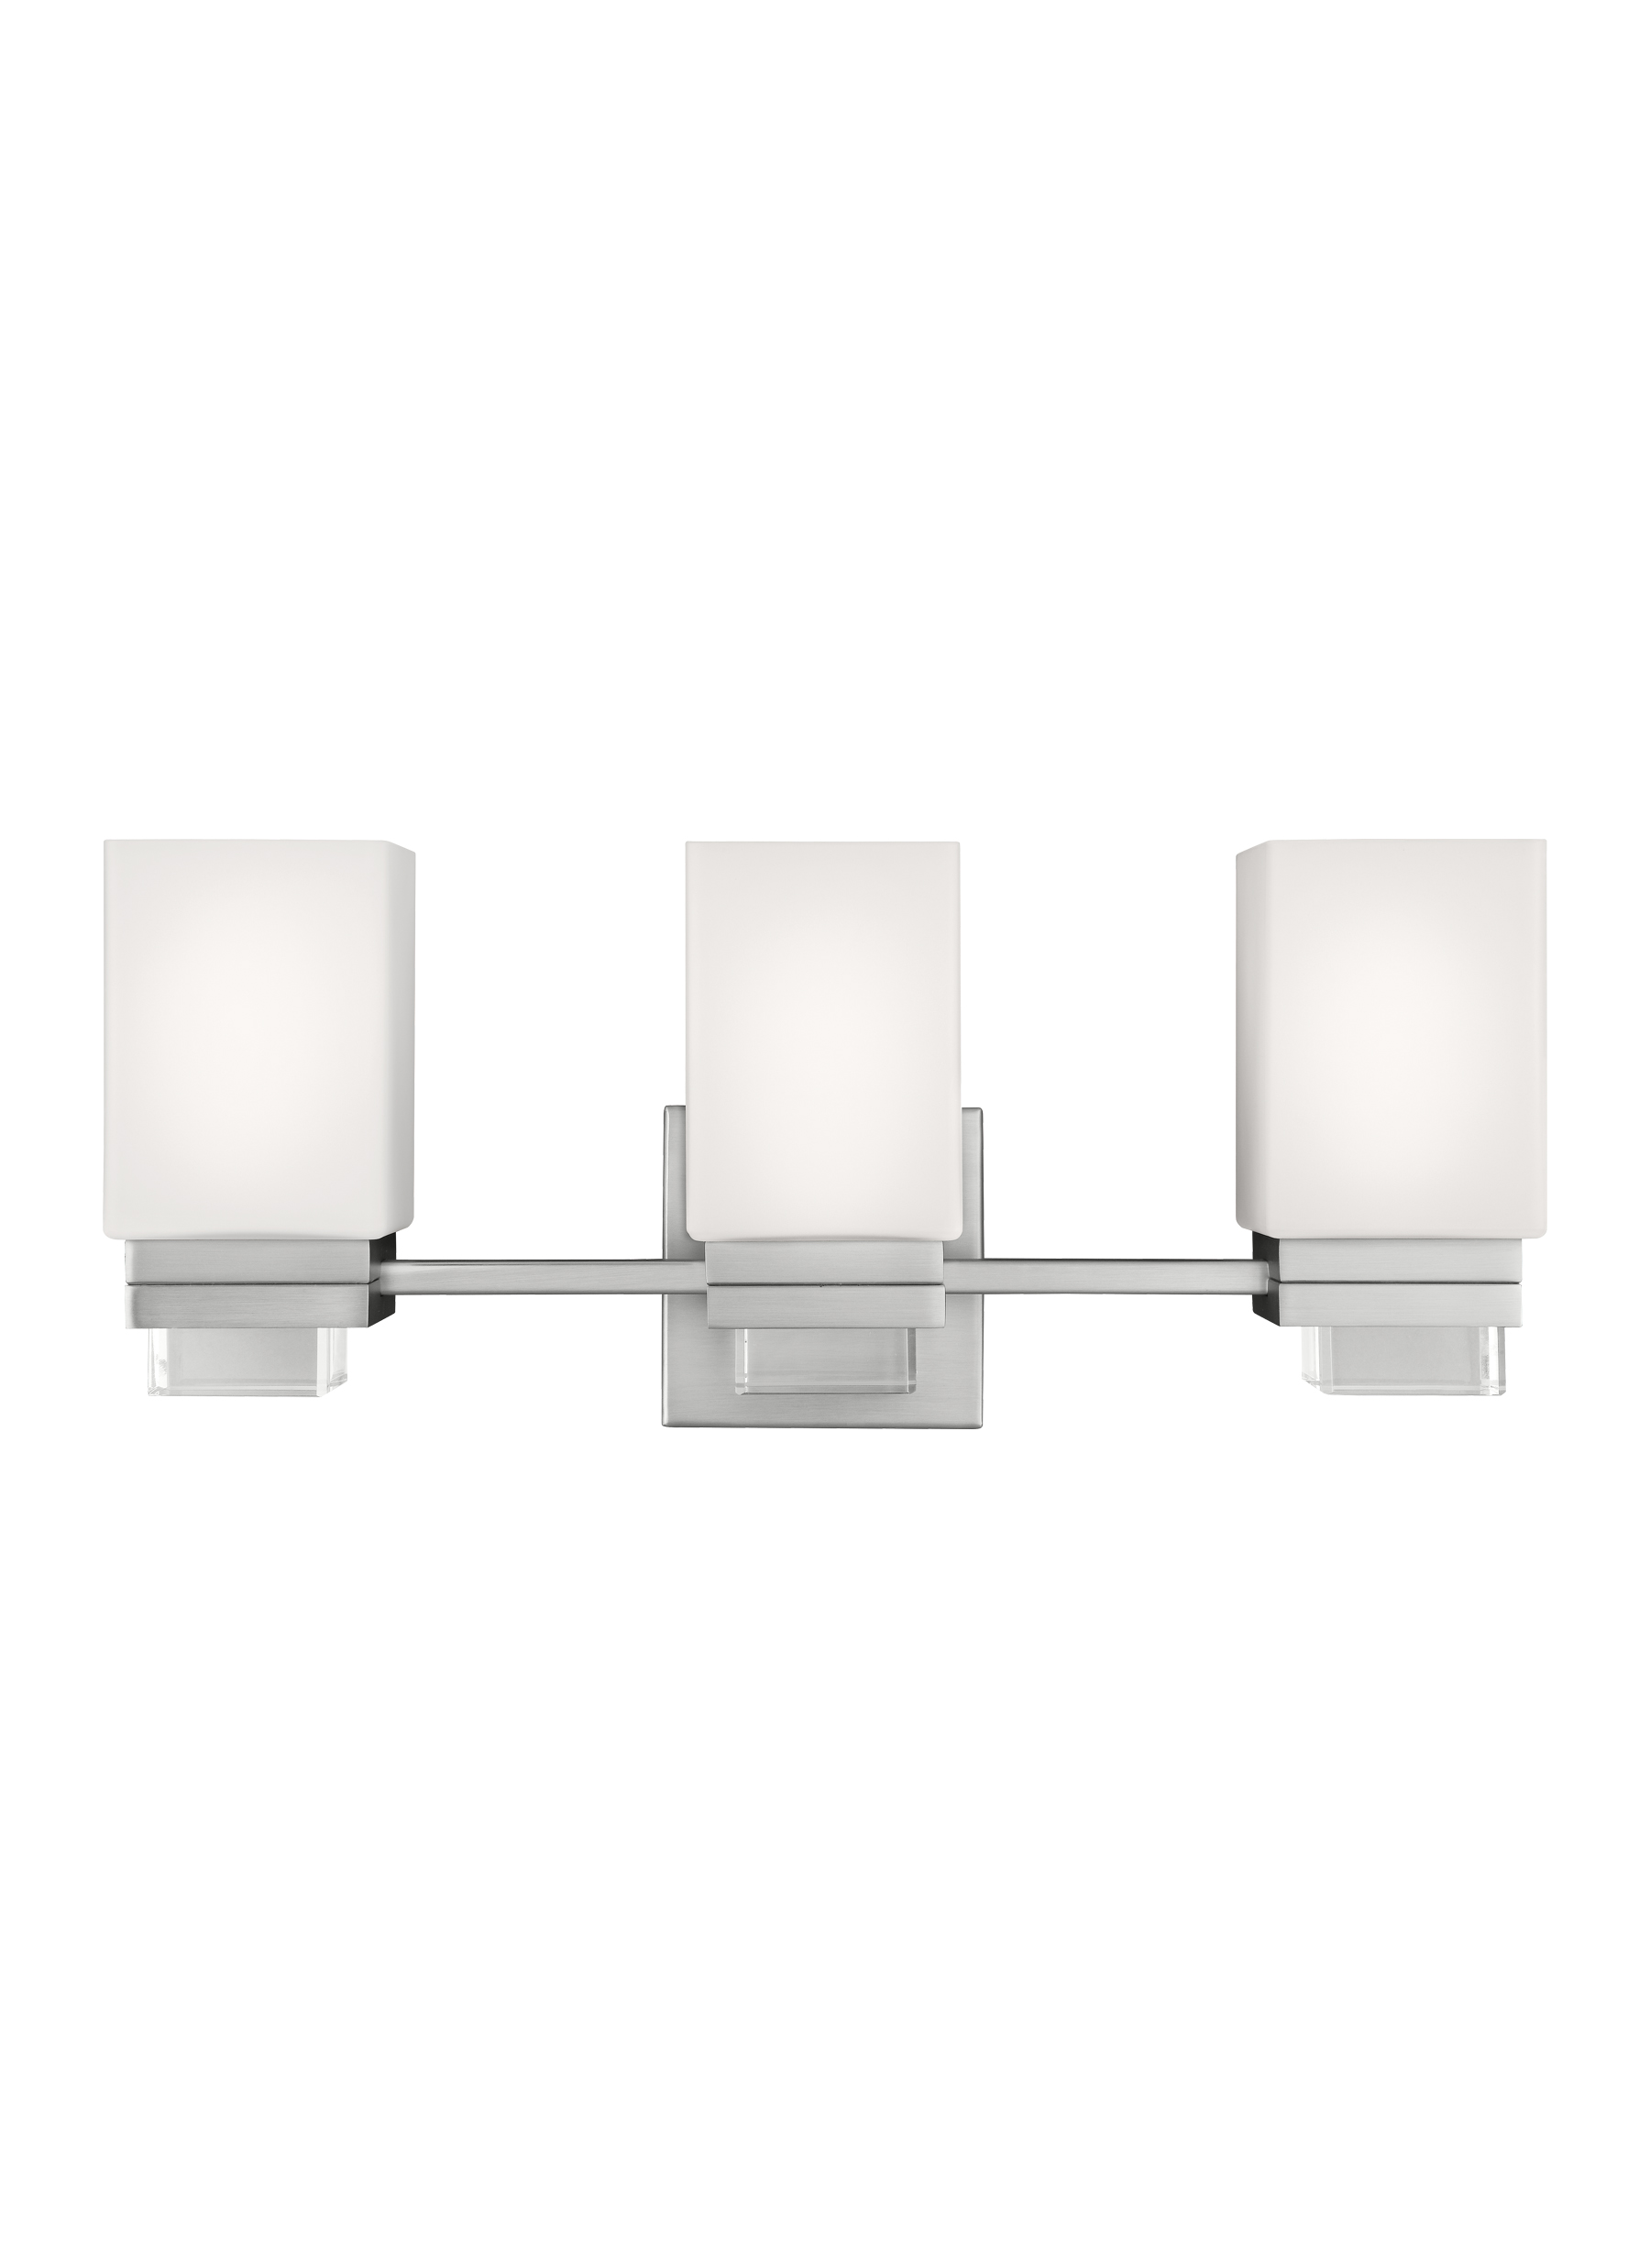 VS20603SN,3 - Light Vanity,Satin Nickel